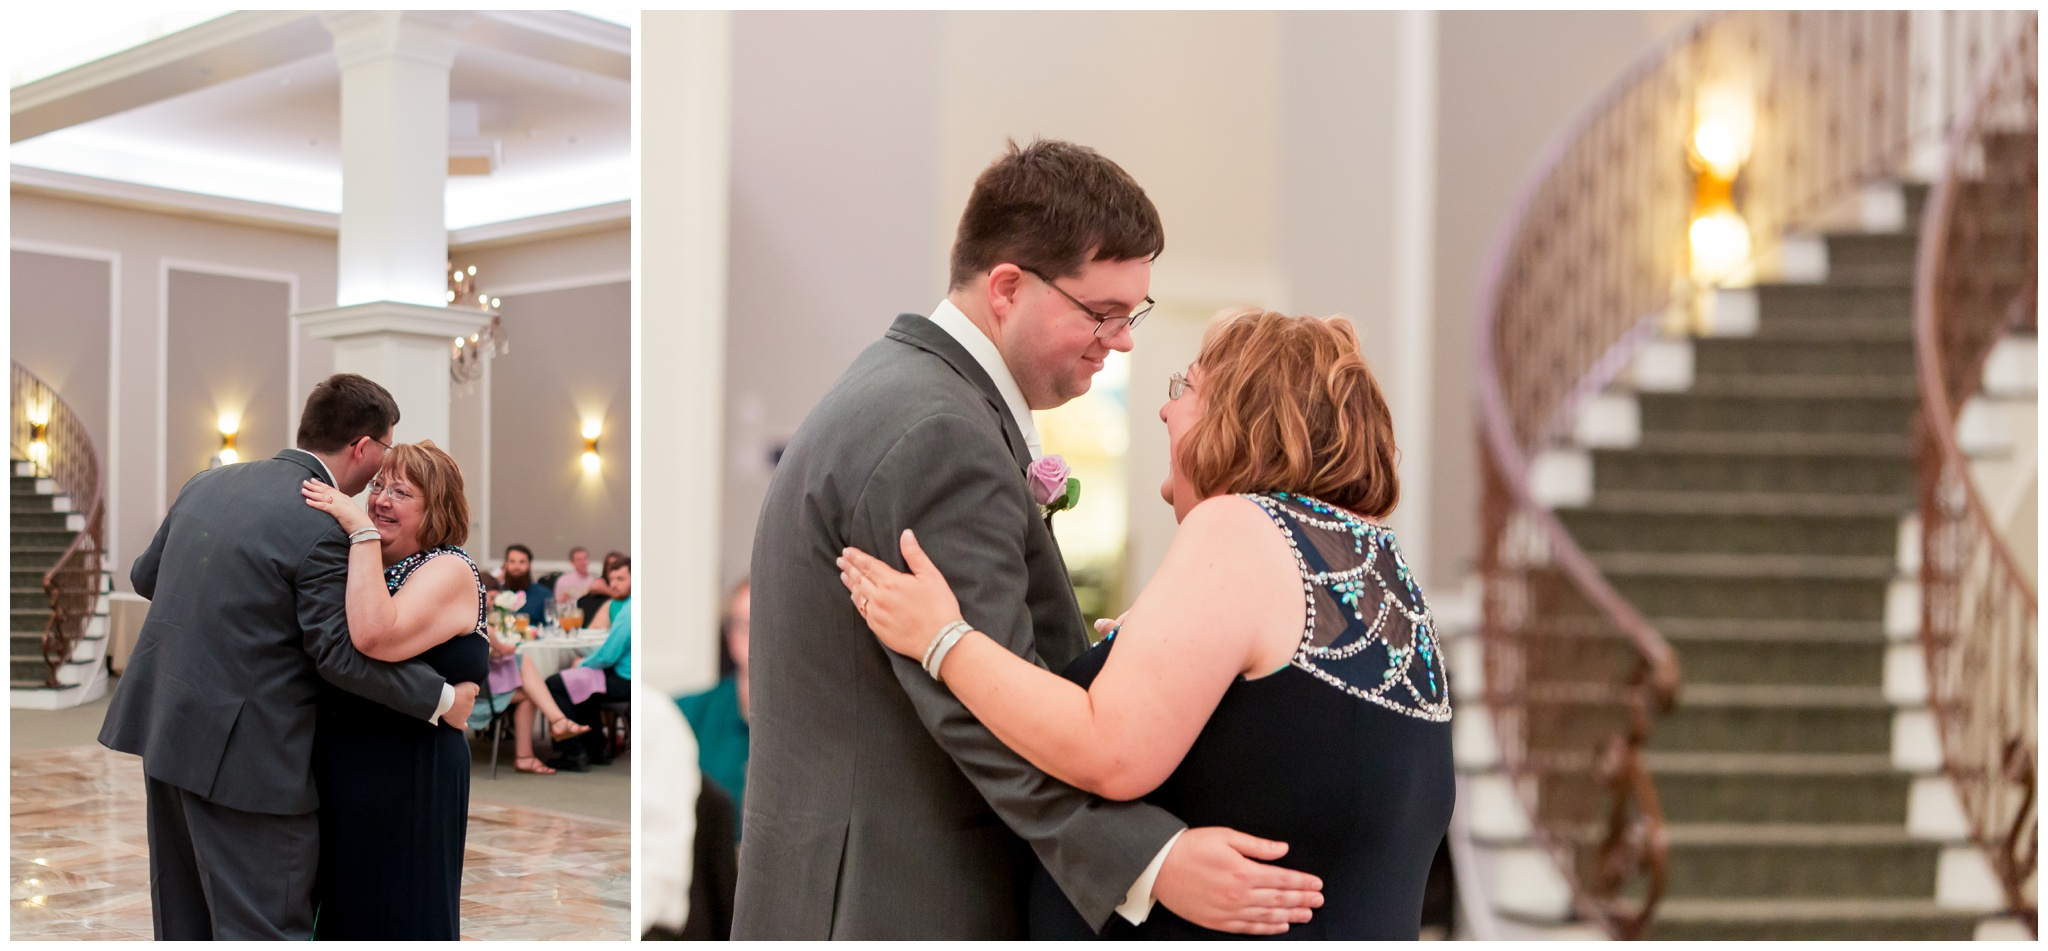 groom and mother of groom dance during wedding reception at Bel Air Events Kokomo